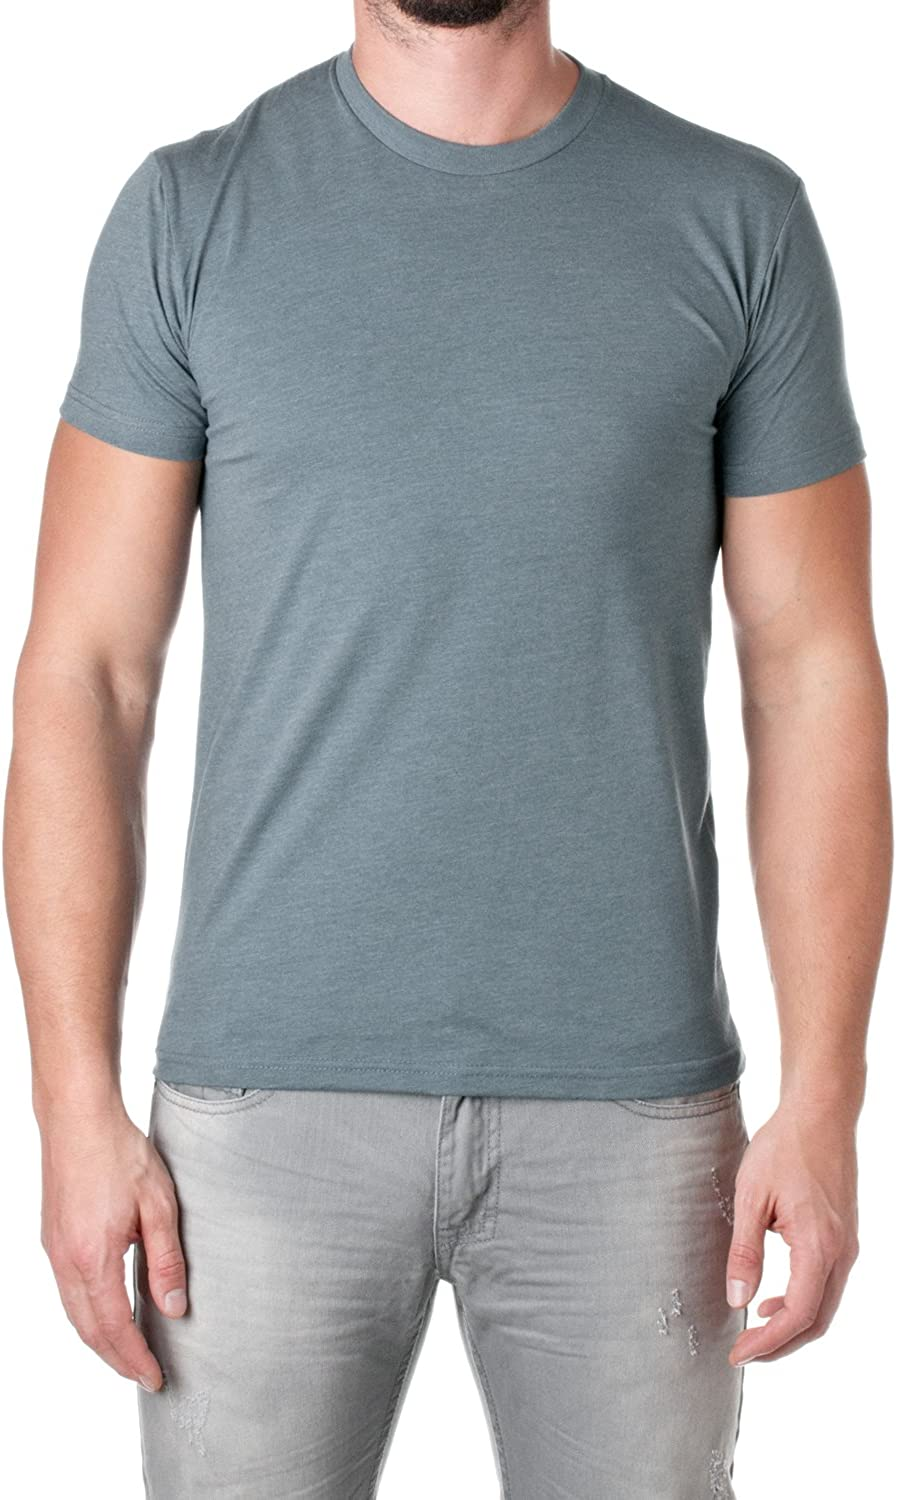 Next Level Mens T-Shirt: Next Level: Clothing